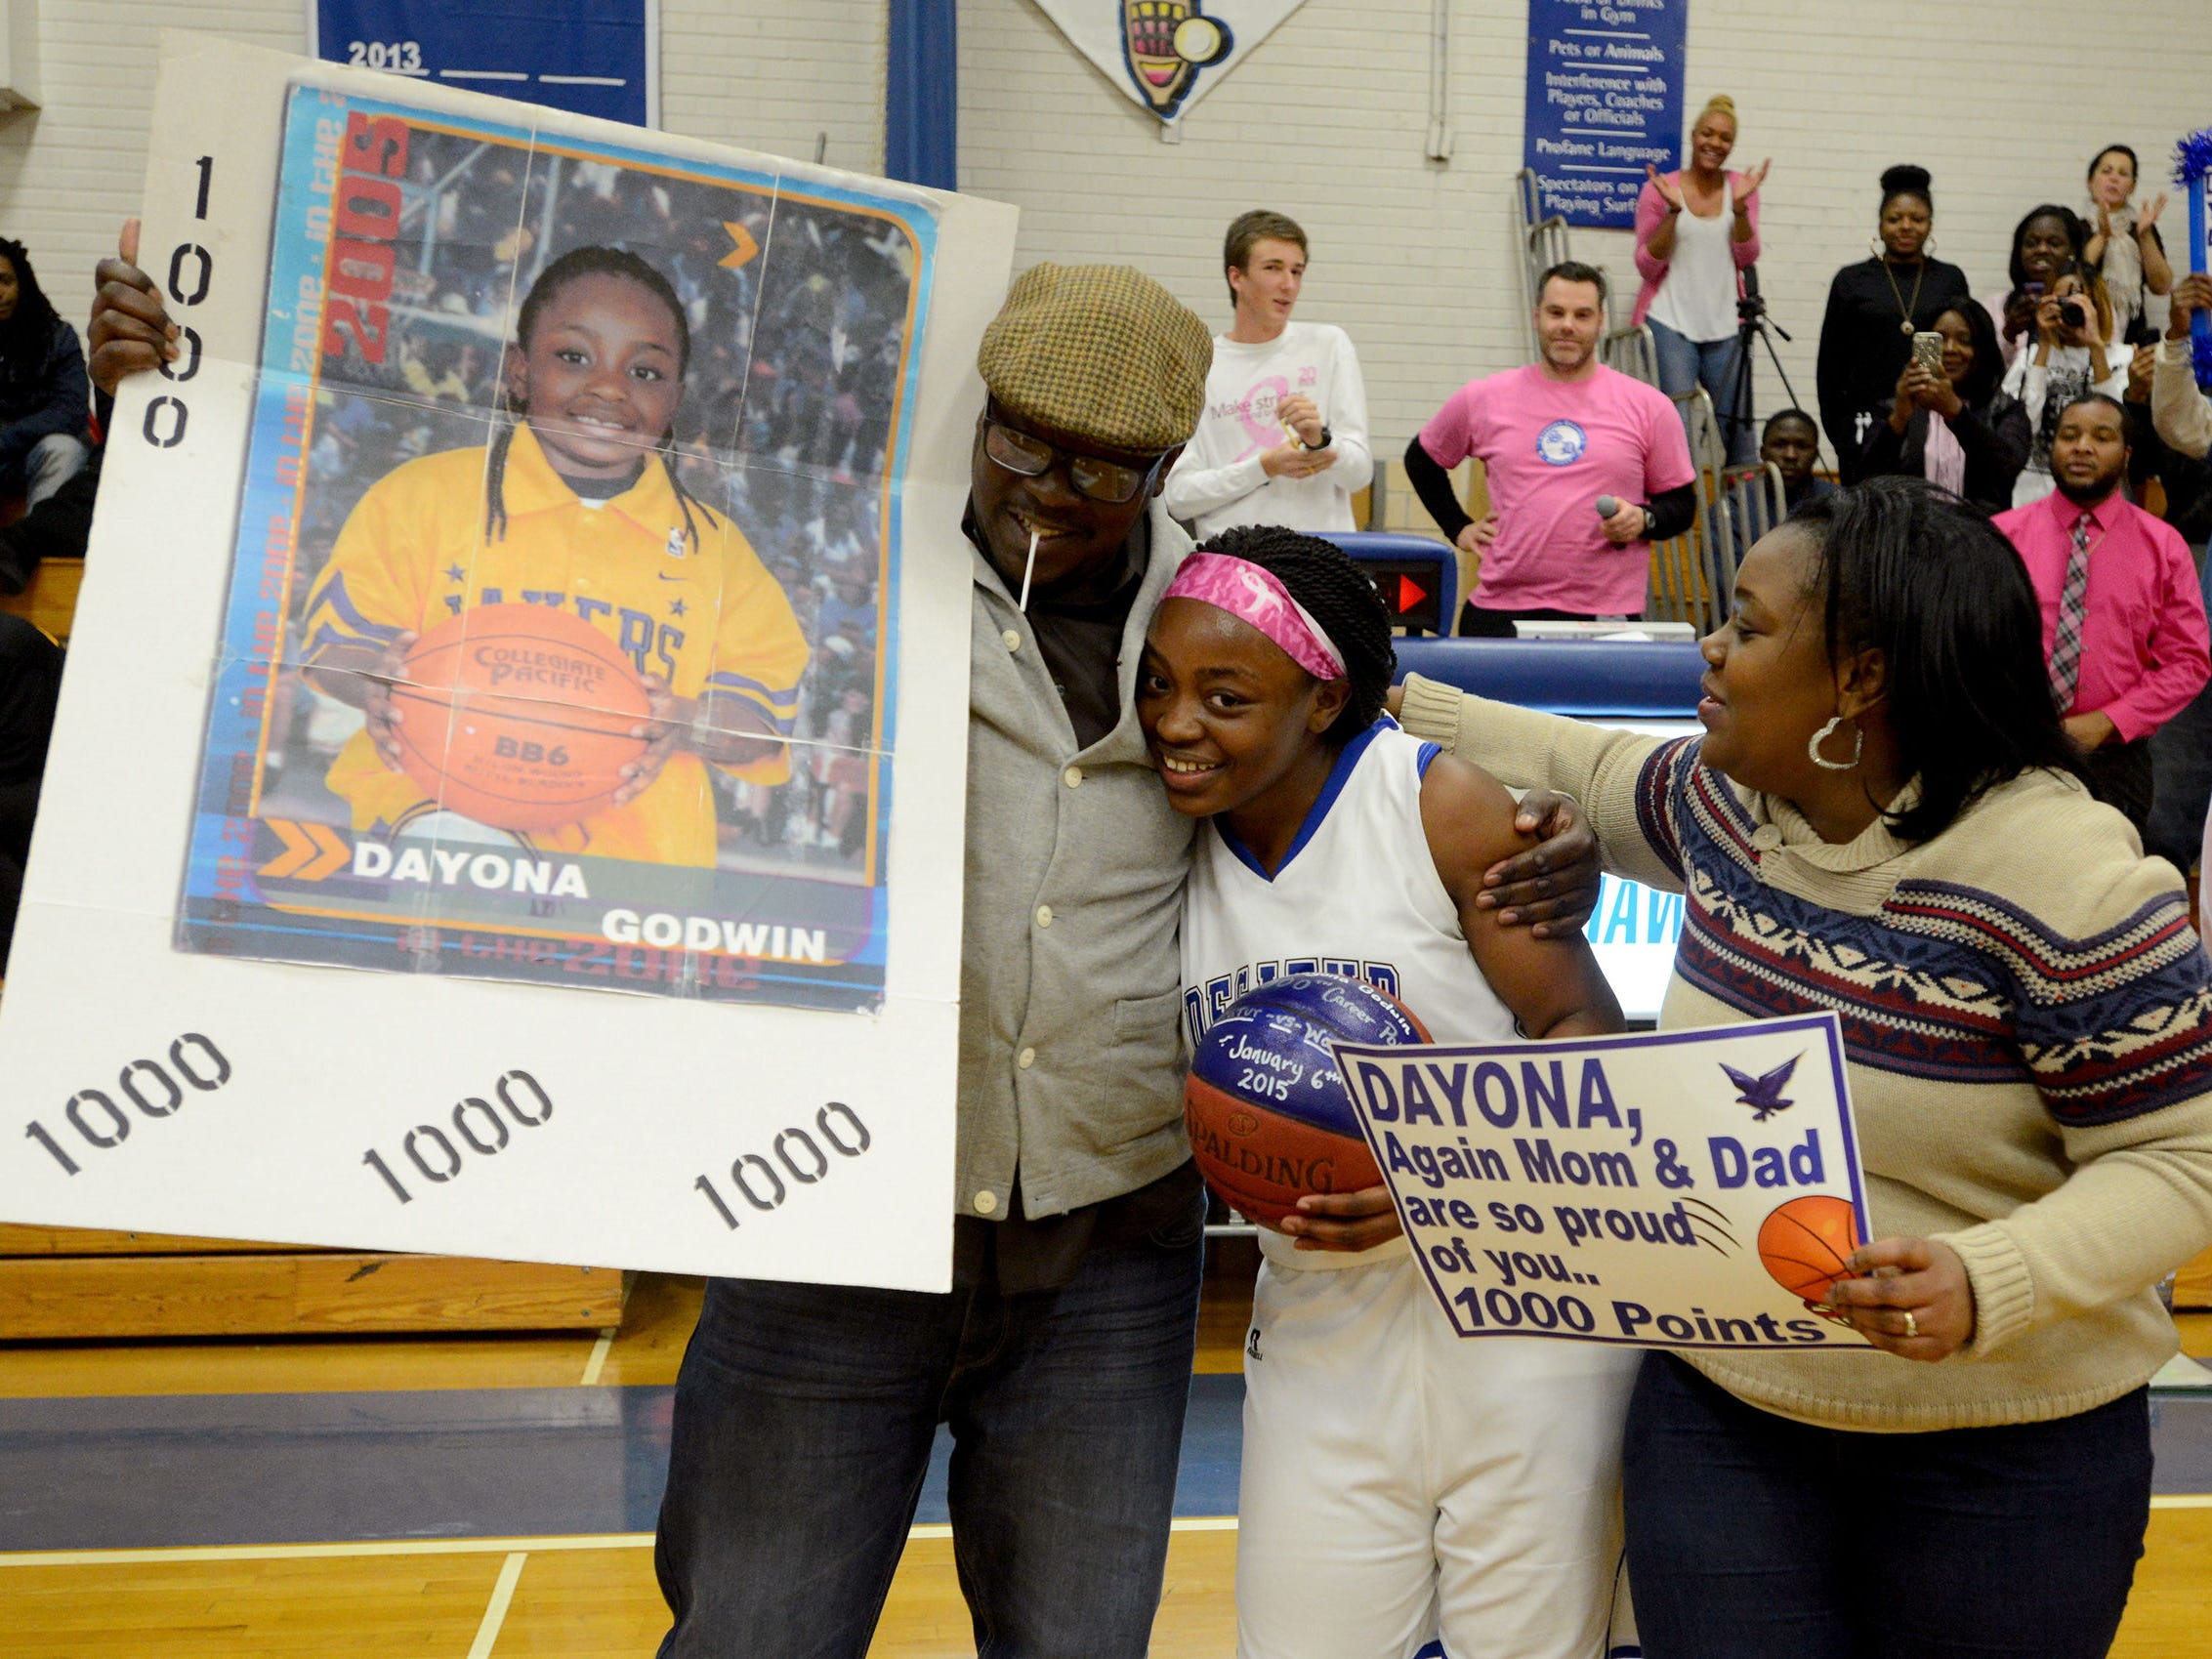 Stephen Decatur's Dayona Godwin gets a celebratory hug from her father, Derek Godwin, left, and her mother Natasha Brittingham after scoring her 1,000th point Tuesday evening.